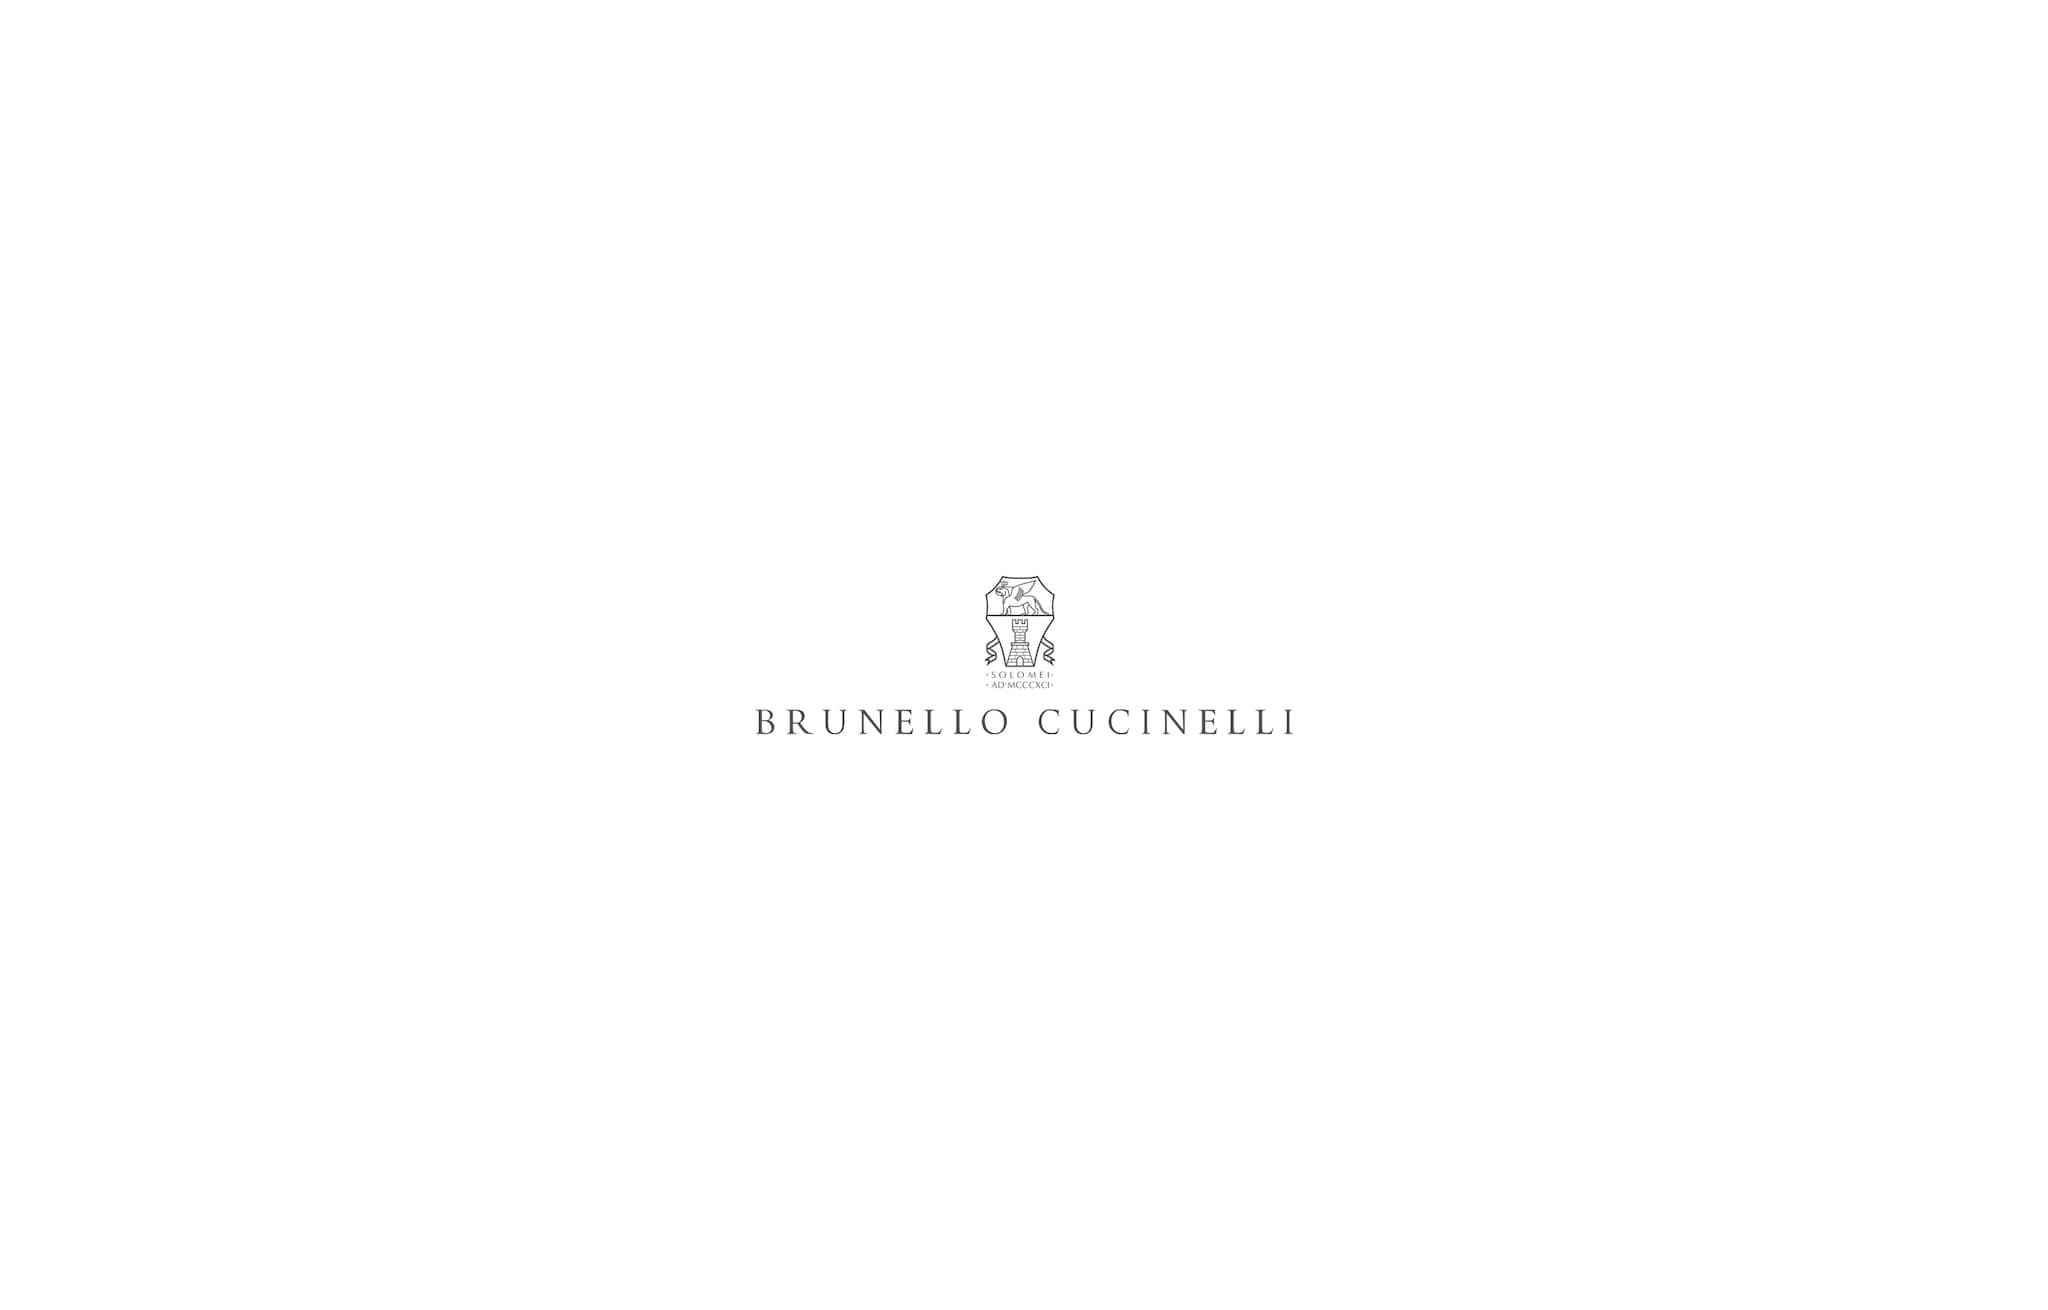 Strickplaid Braun Lifestyle - Brunello Cucinelli